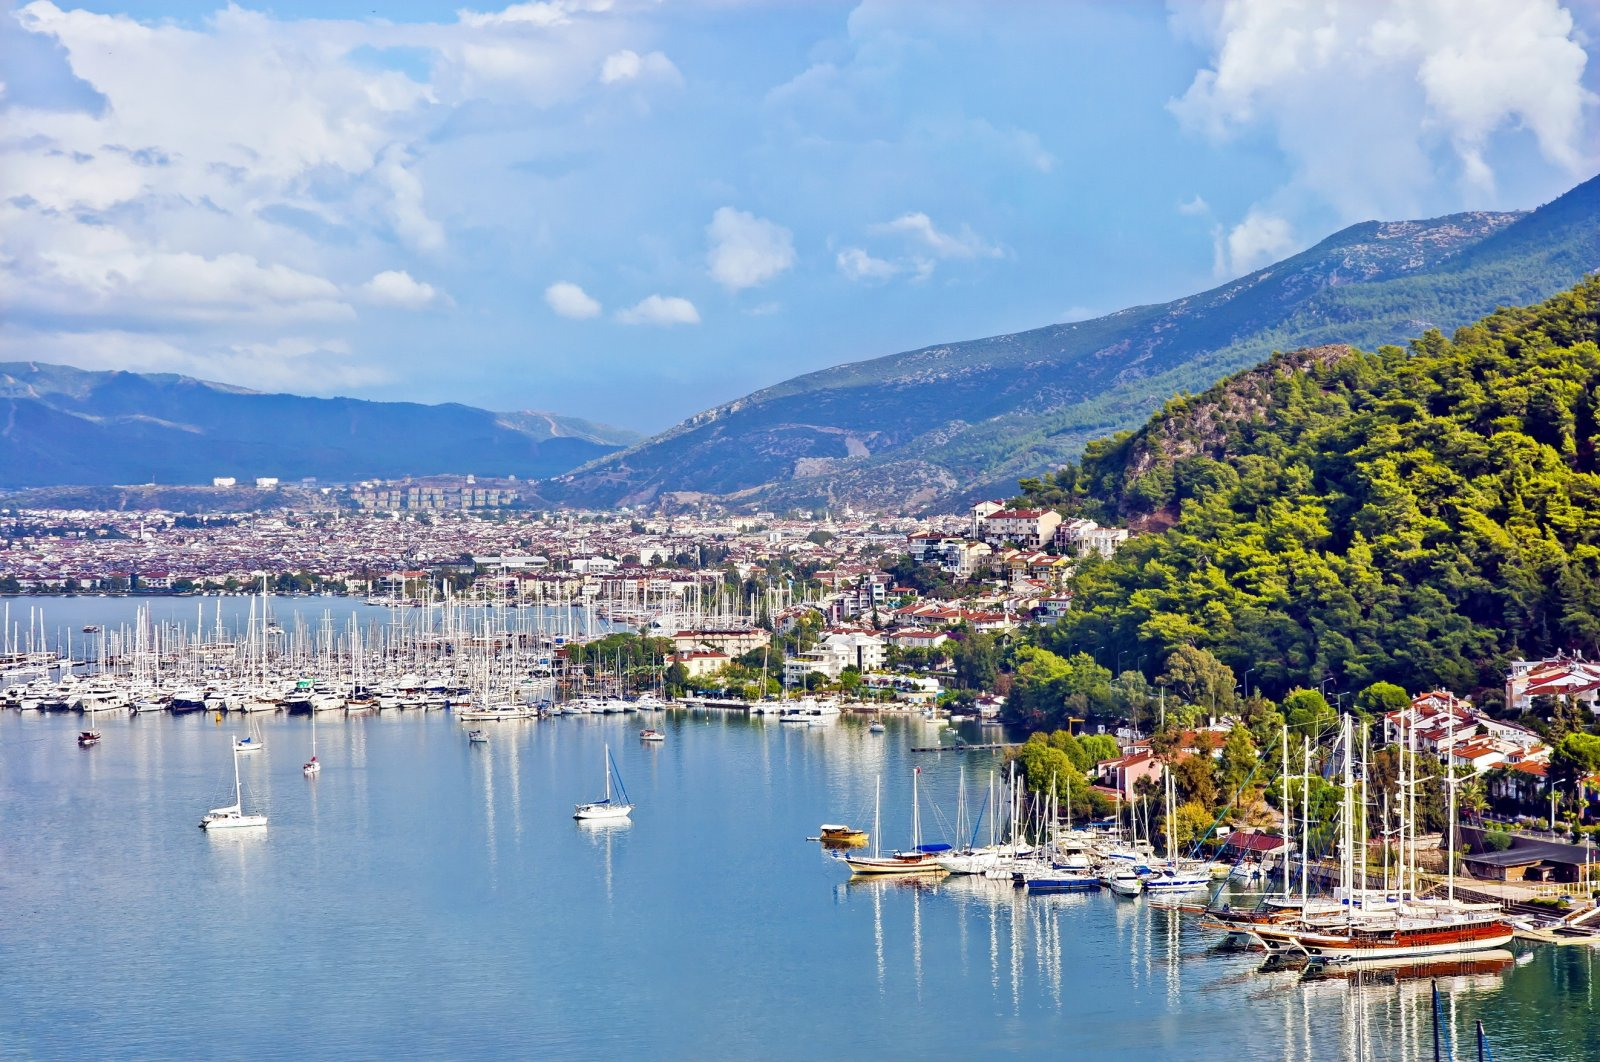 Fethiye is one of the most popular tourist destinations in Turkey. (Shutterstock Photo)